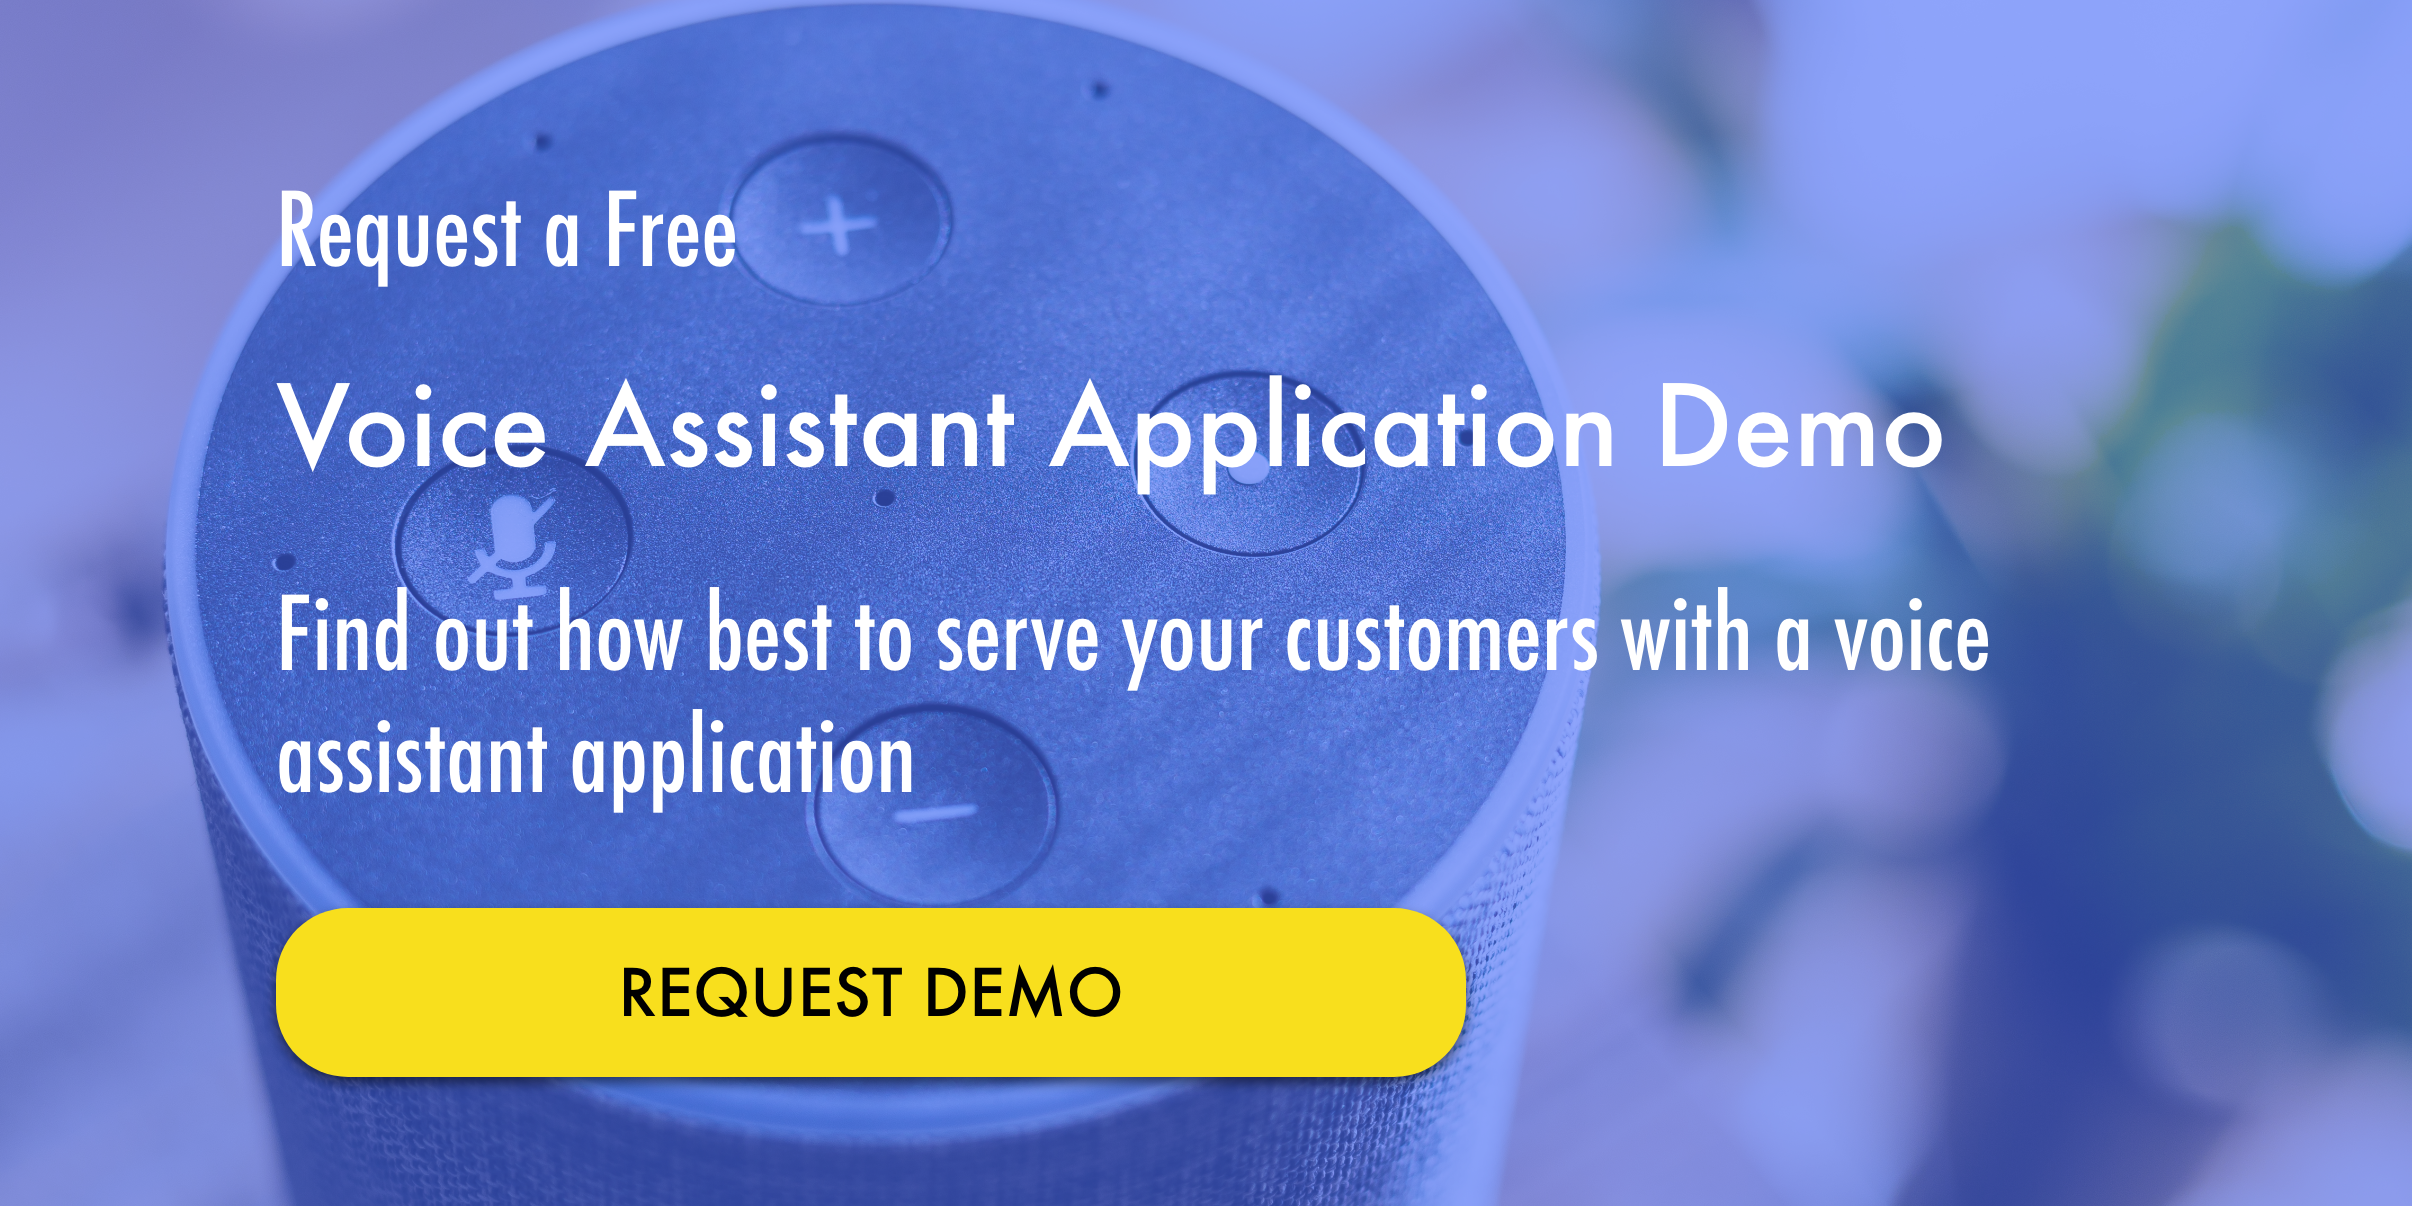 Request a free digital assistant application demo - find out how best to serve your customers with a digital assistant application | request a free virtual assistant application demo